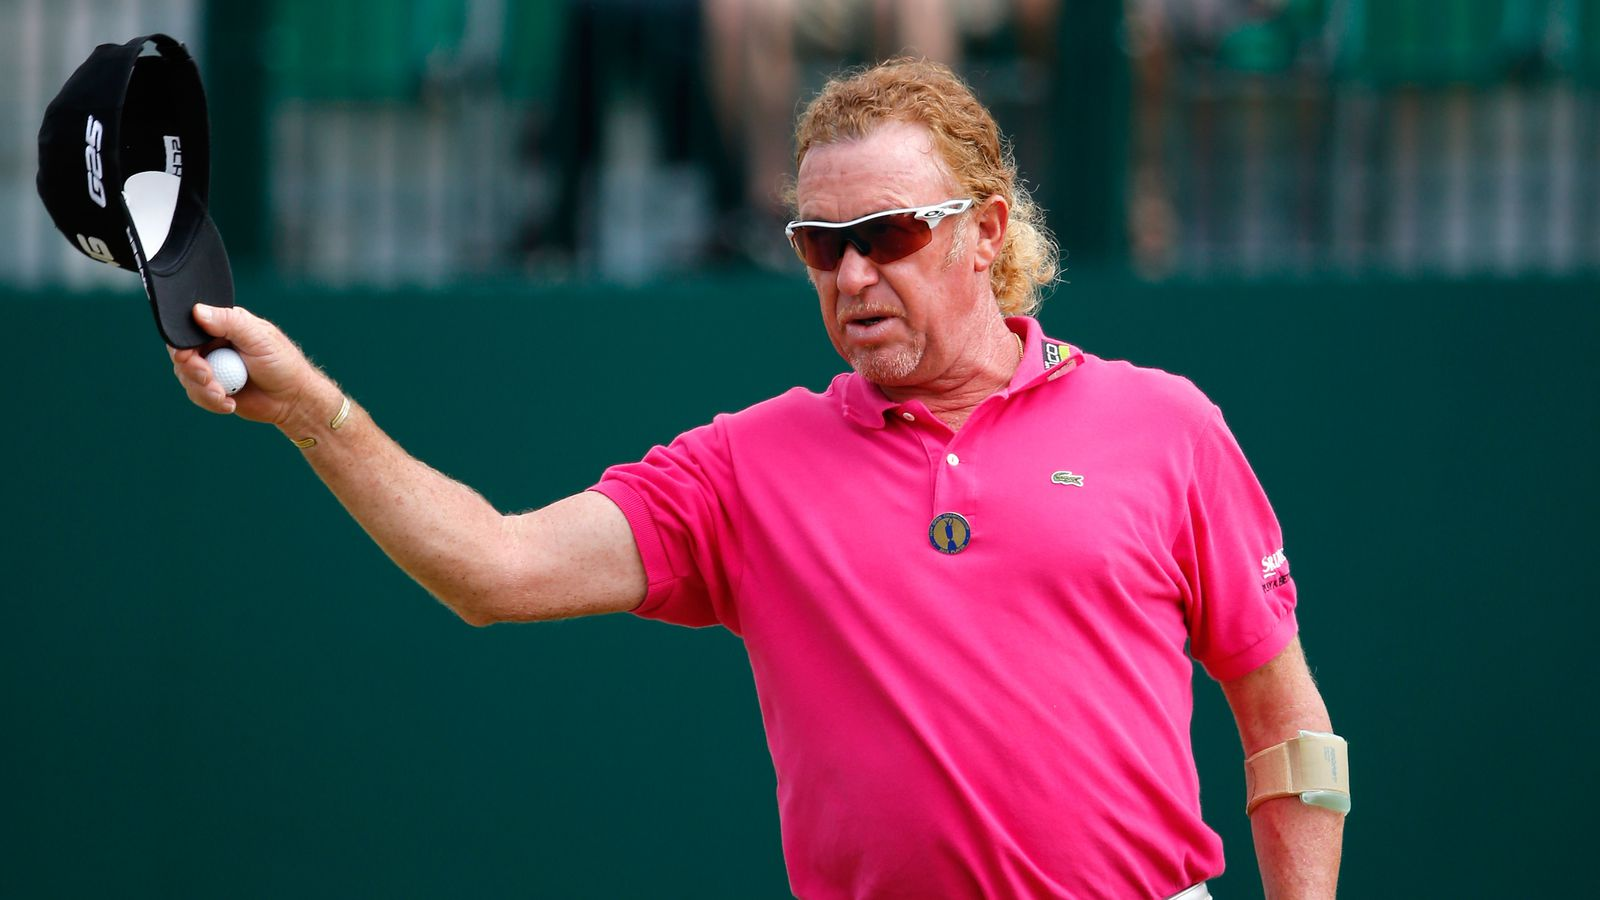 espn adds to miguel angel jimenez legend at the british